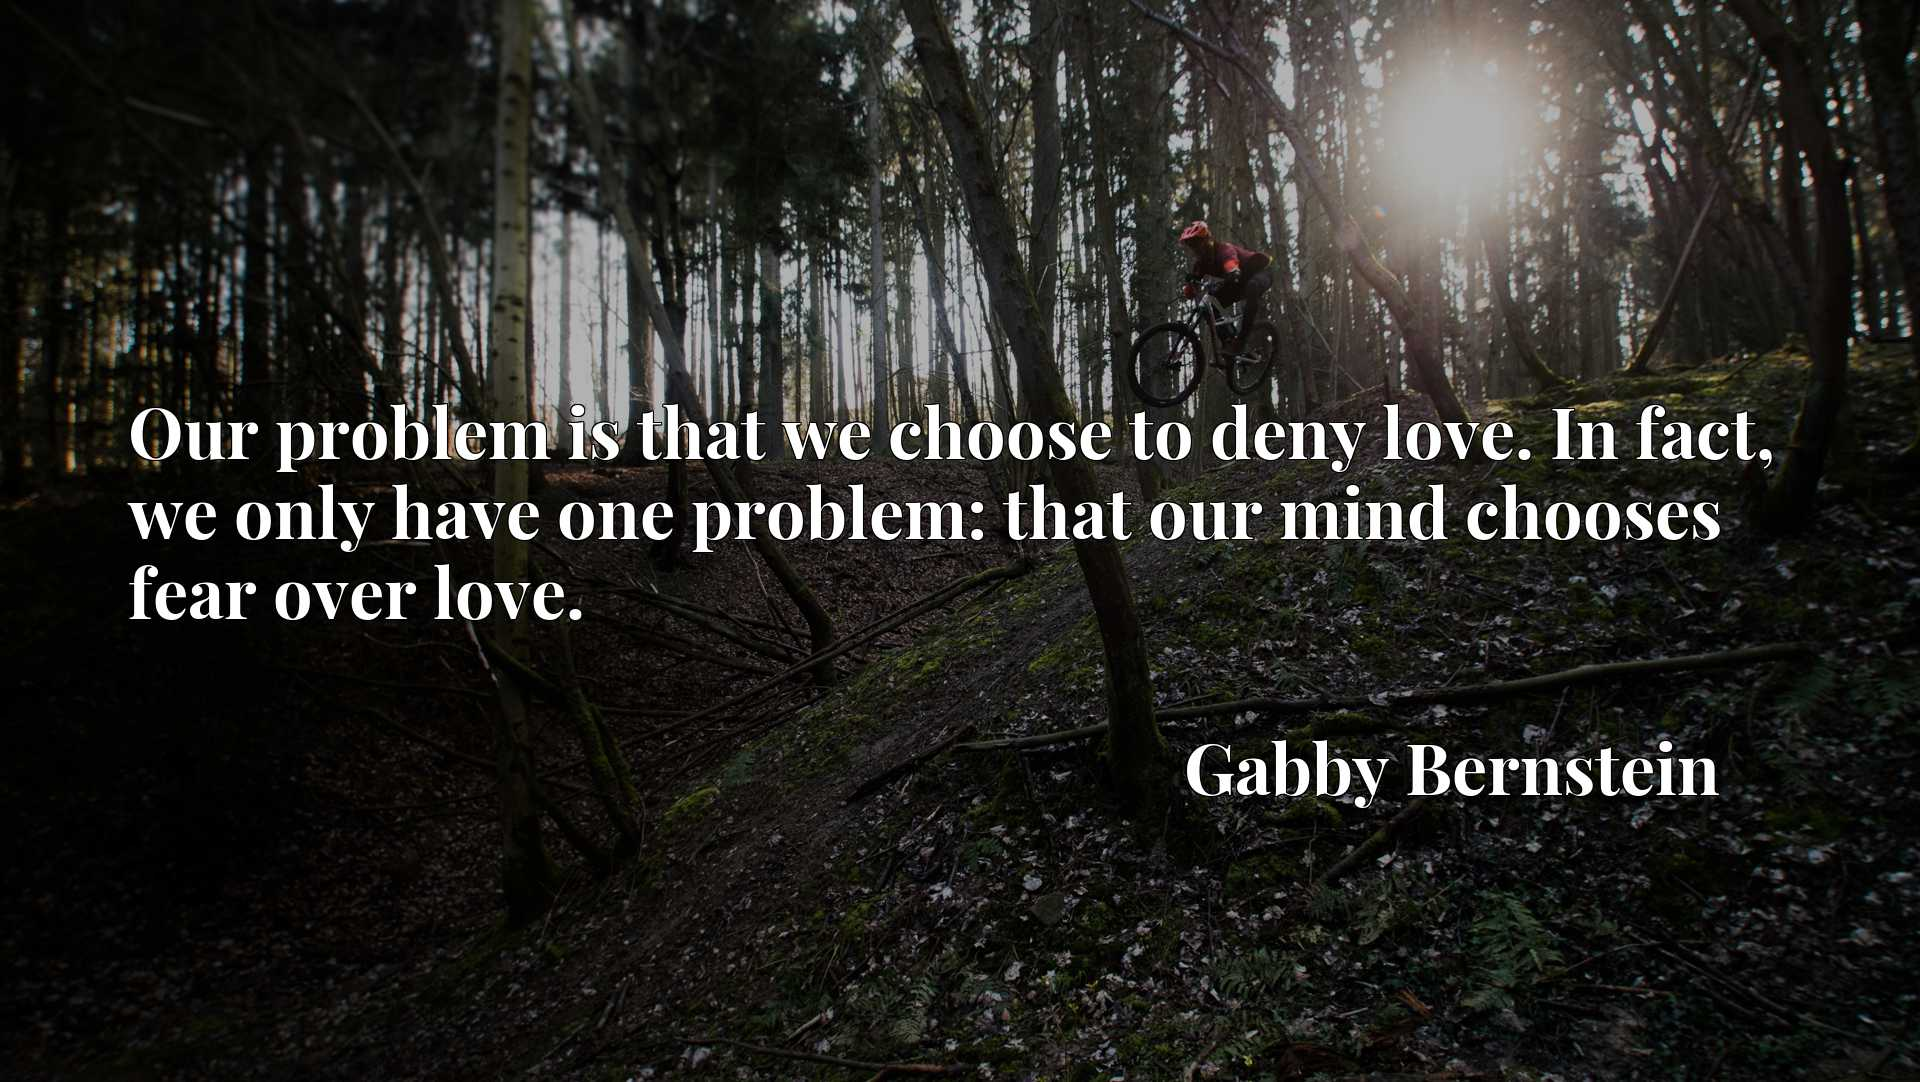 Our problem is that we choose to deny love. In fact, we only have one problem: that our mind chooses fear over love.